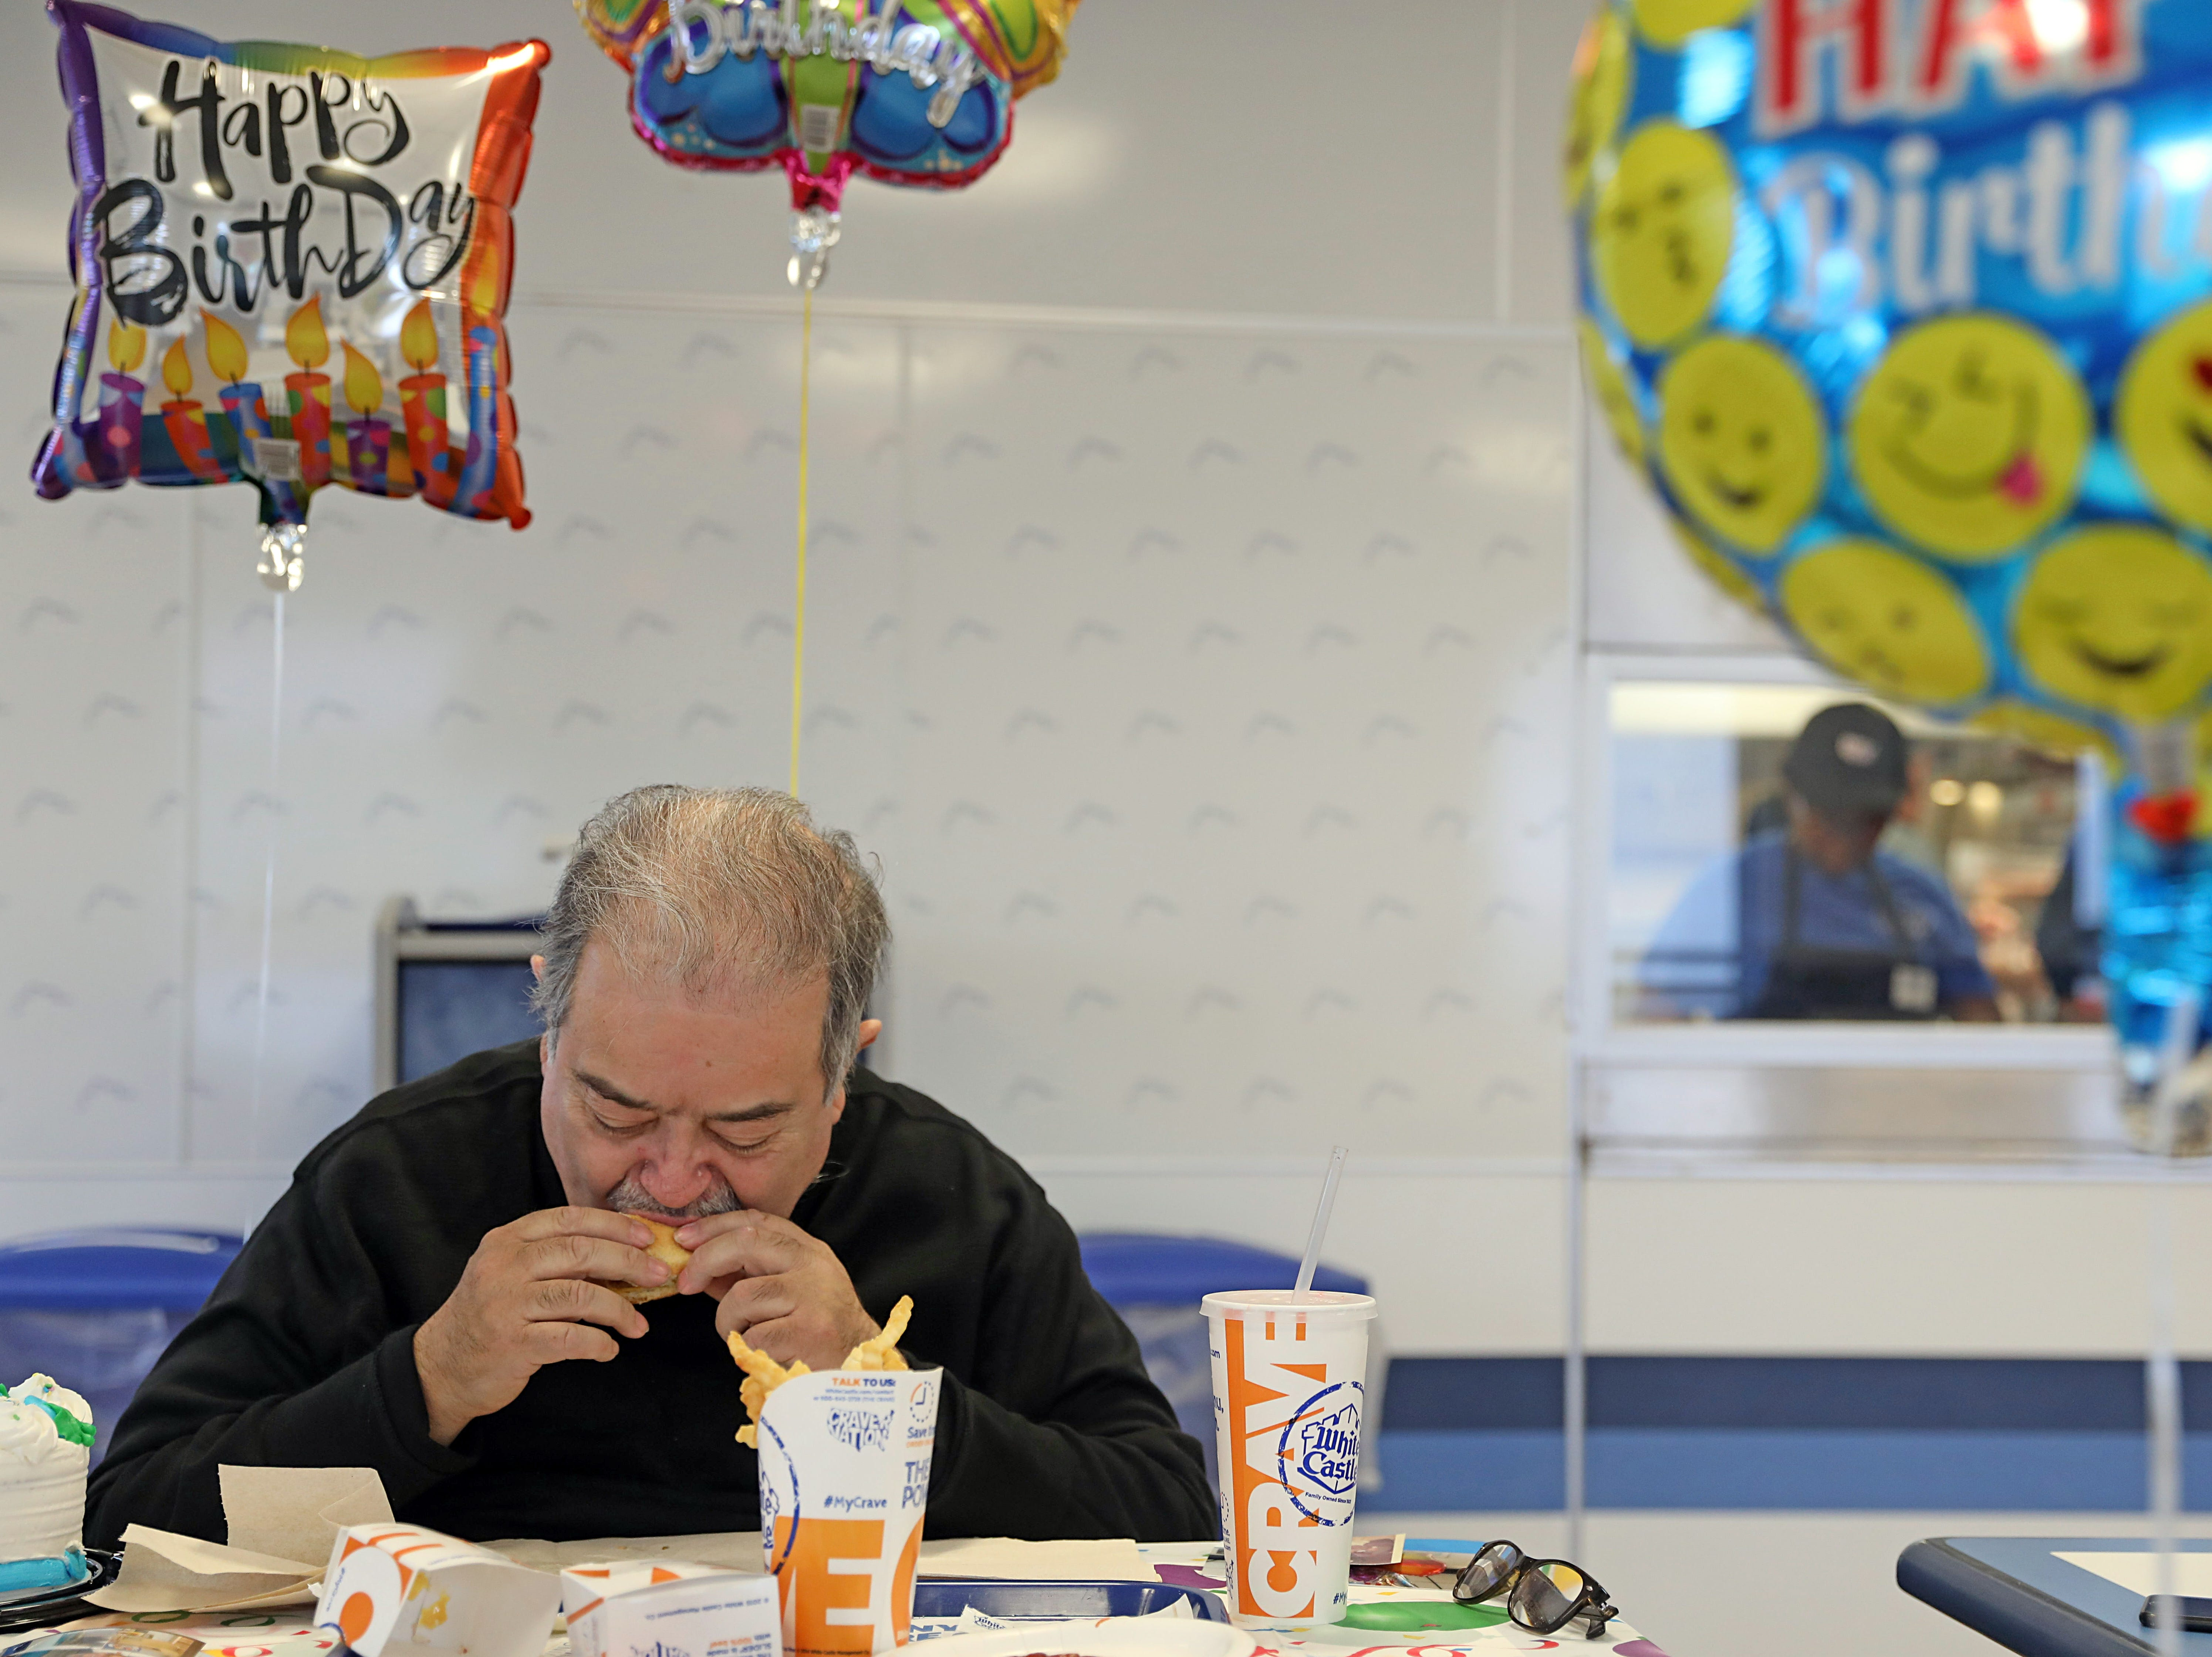 Peter Bevilacqua eats a fish sandwich on his 62nd birthday at White Castle in Nanuet April 3, 2018. Bevilacqua has been going to White Castle on his birthday for the past 57 years.